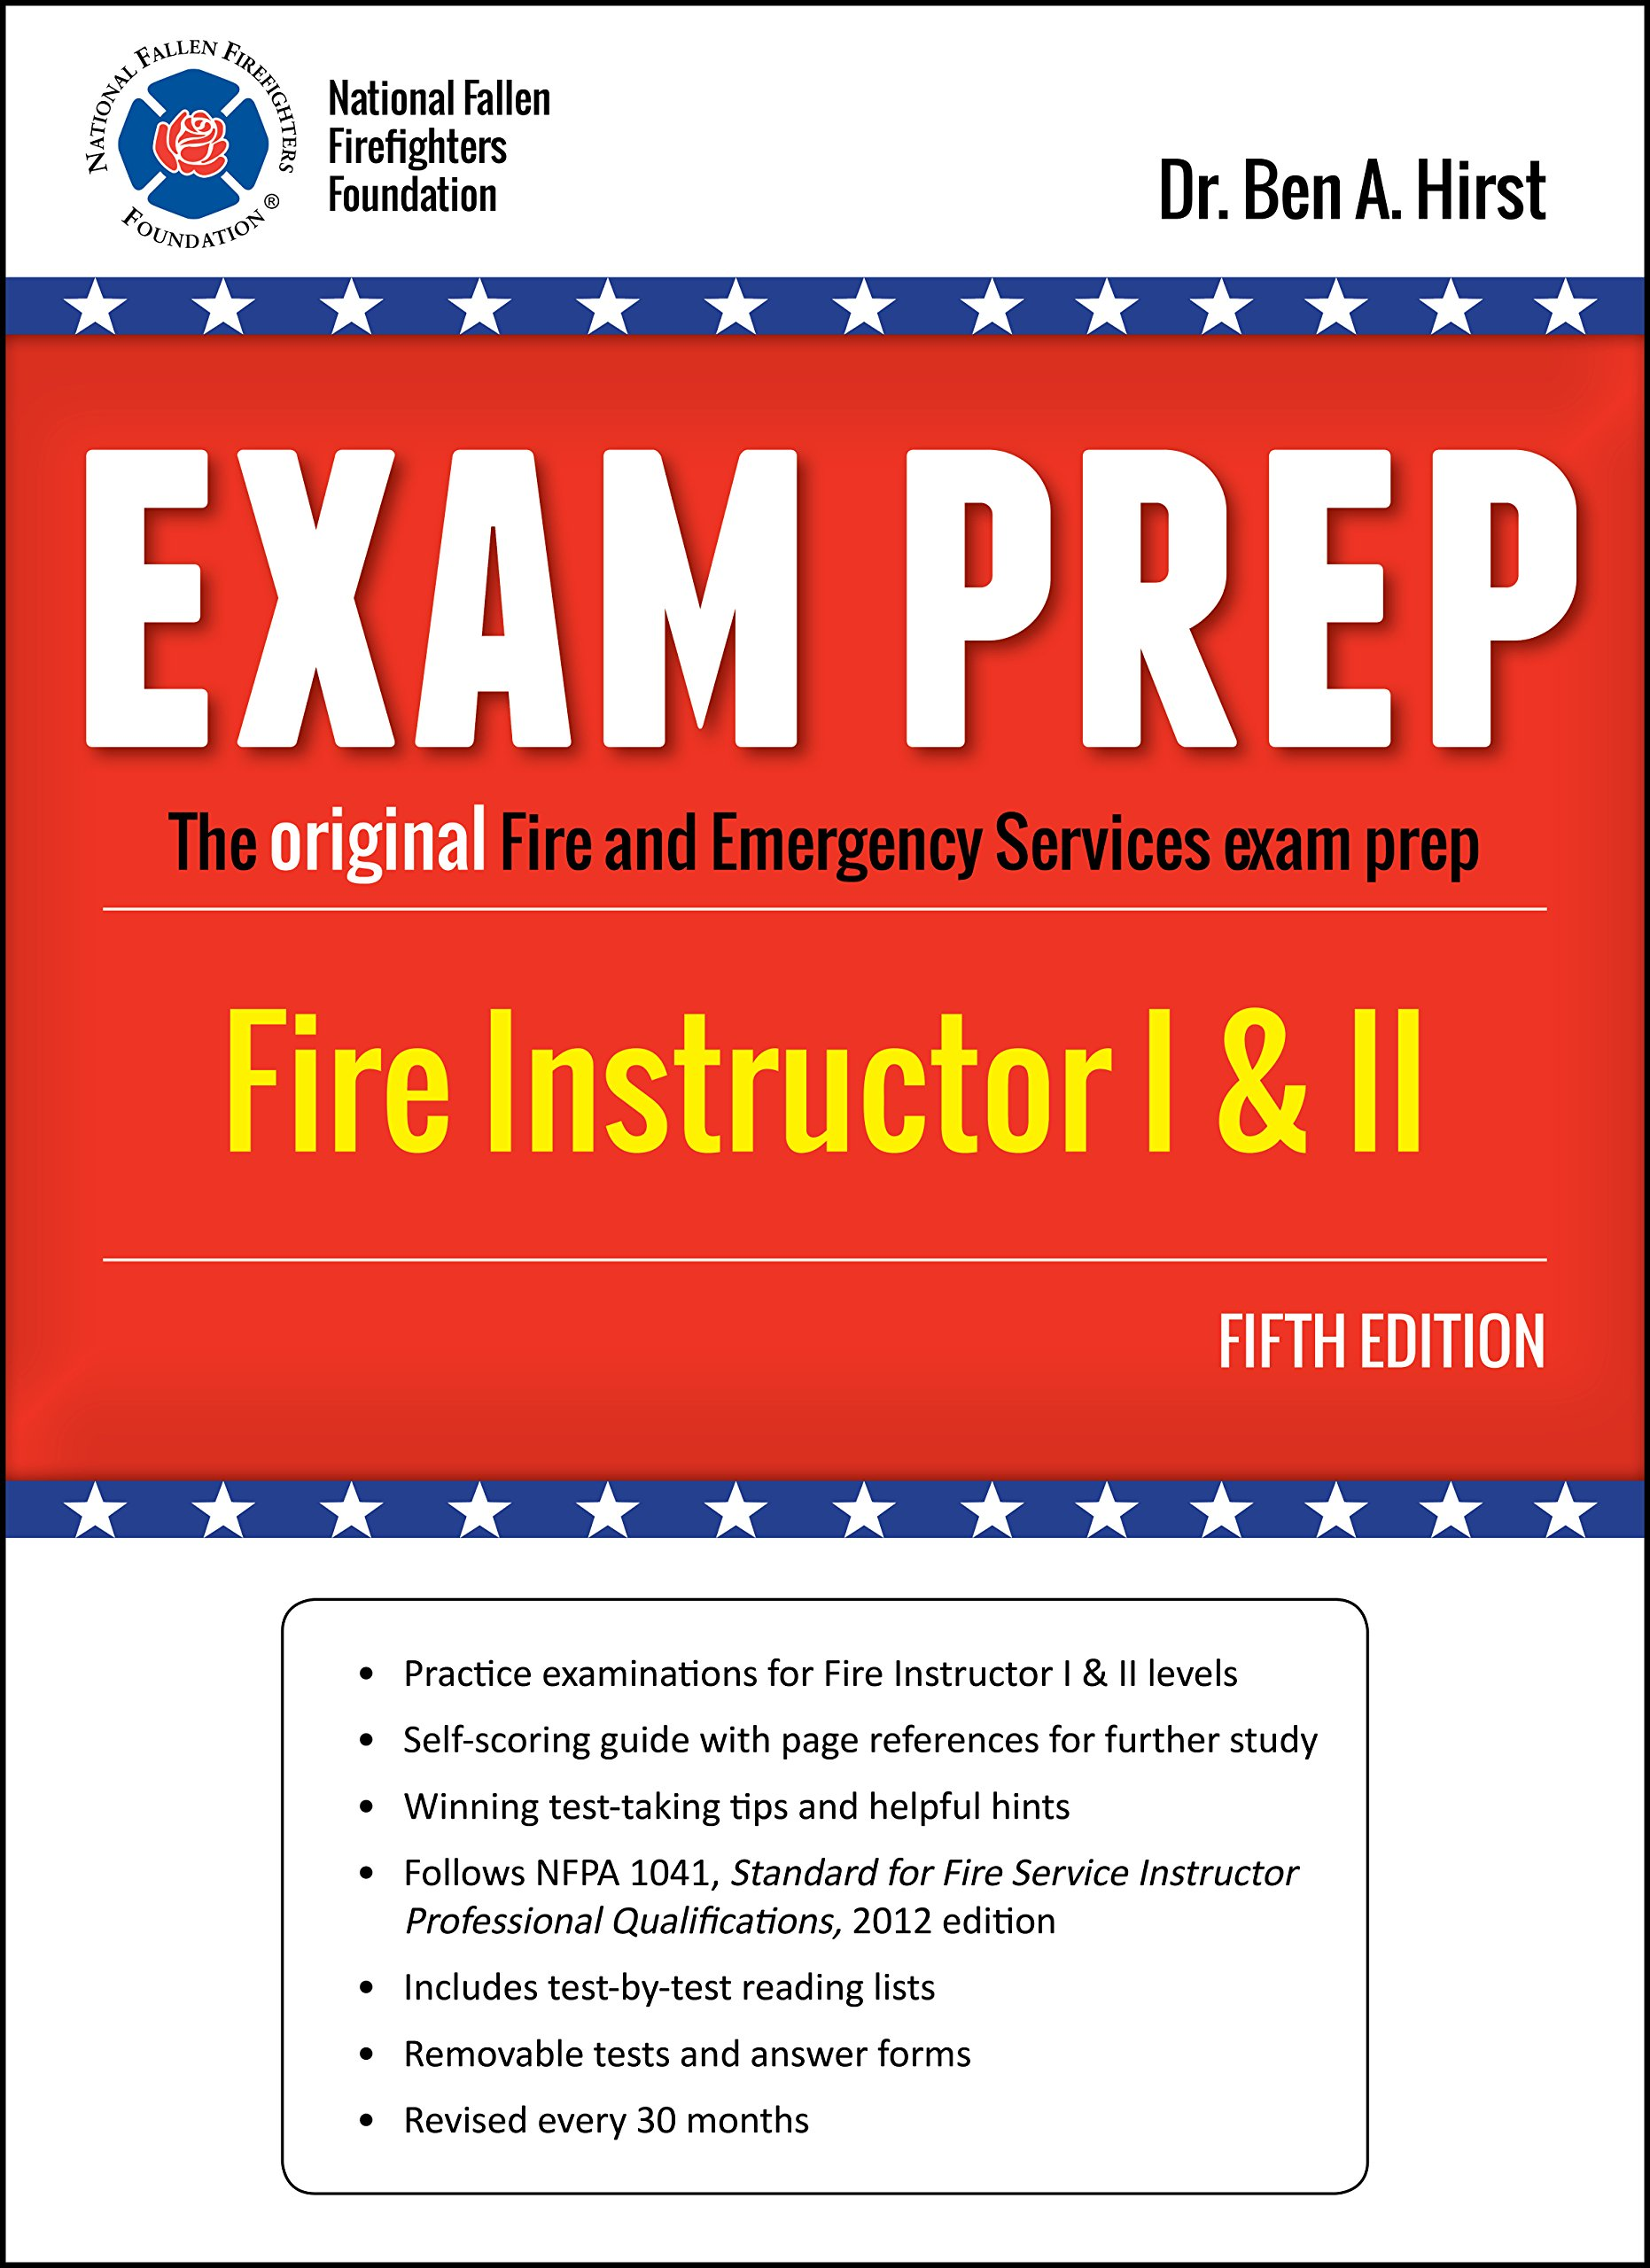 Exam Prep: Fire Instructor, Fifth Edition by Performance Training Systems,  Dr. Ben A. Hirst: Dr. Ben Hirst: 9781495117527: Amazon.com: Books